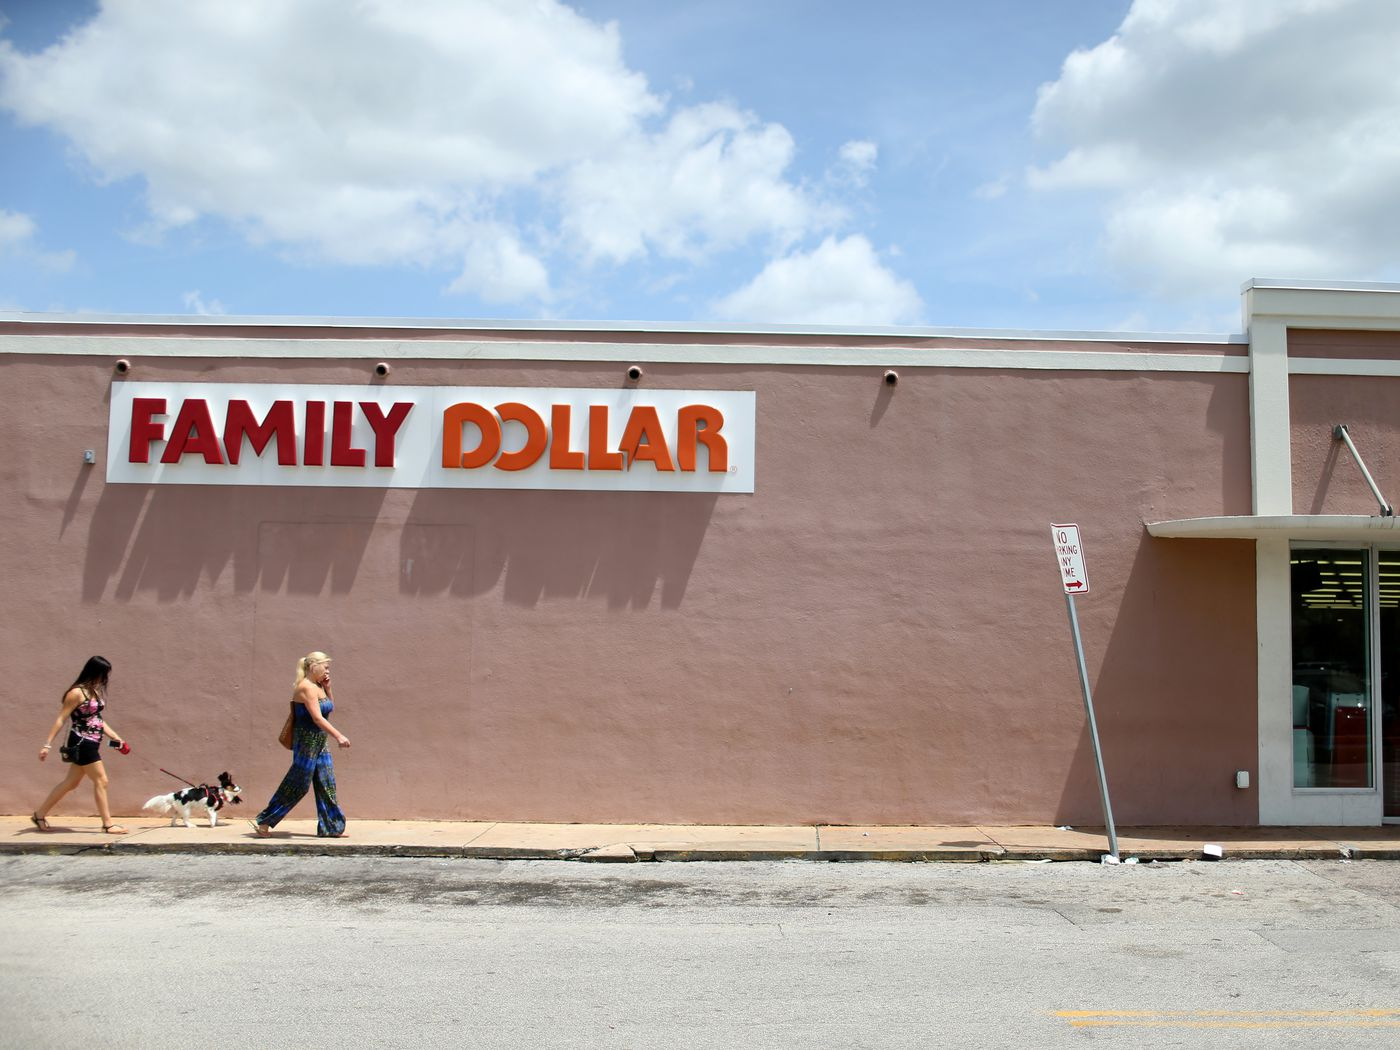 Dollar Tree is closing almost 5 Family Dollar stores this year - Vox